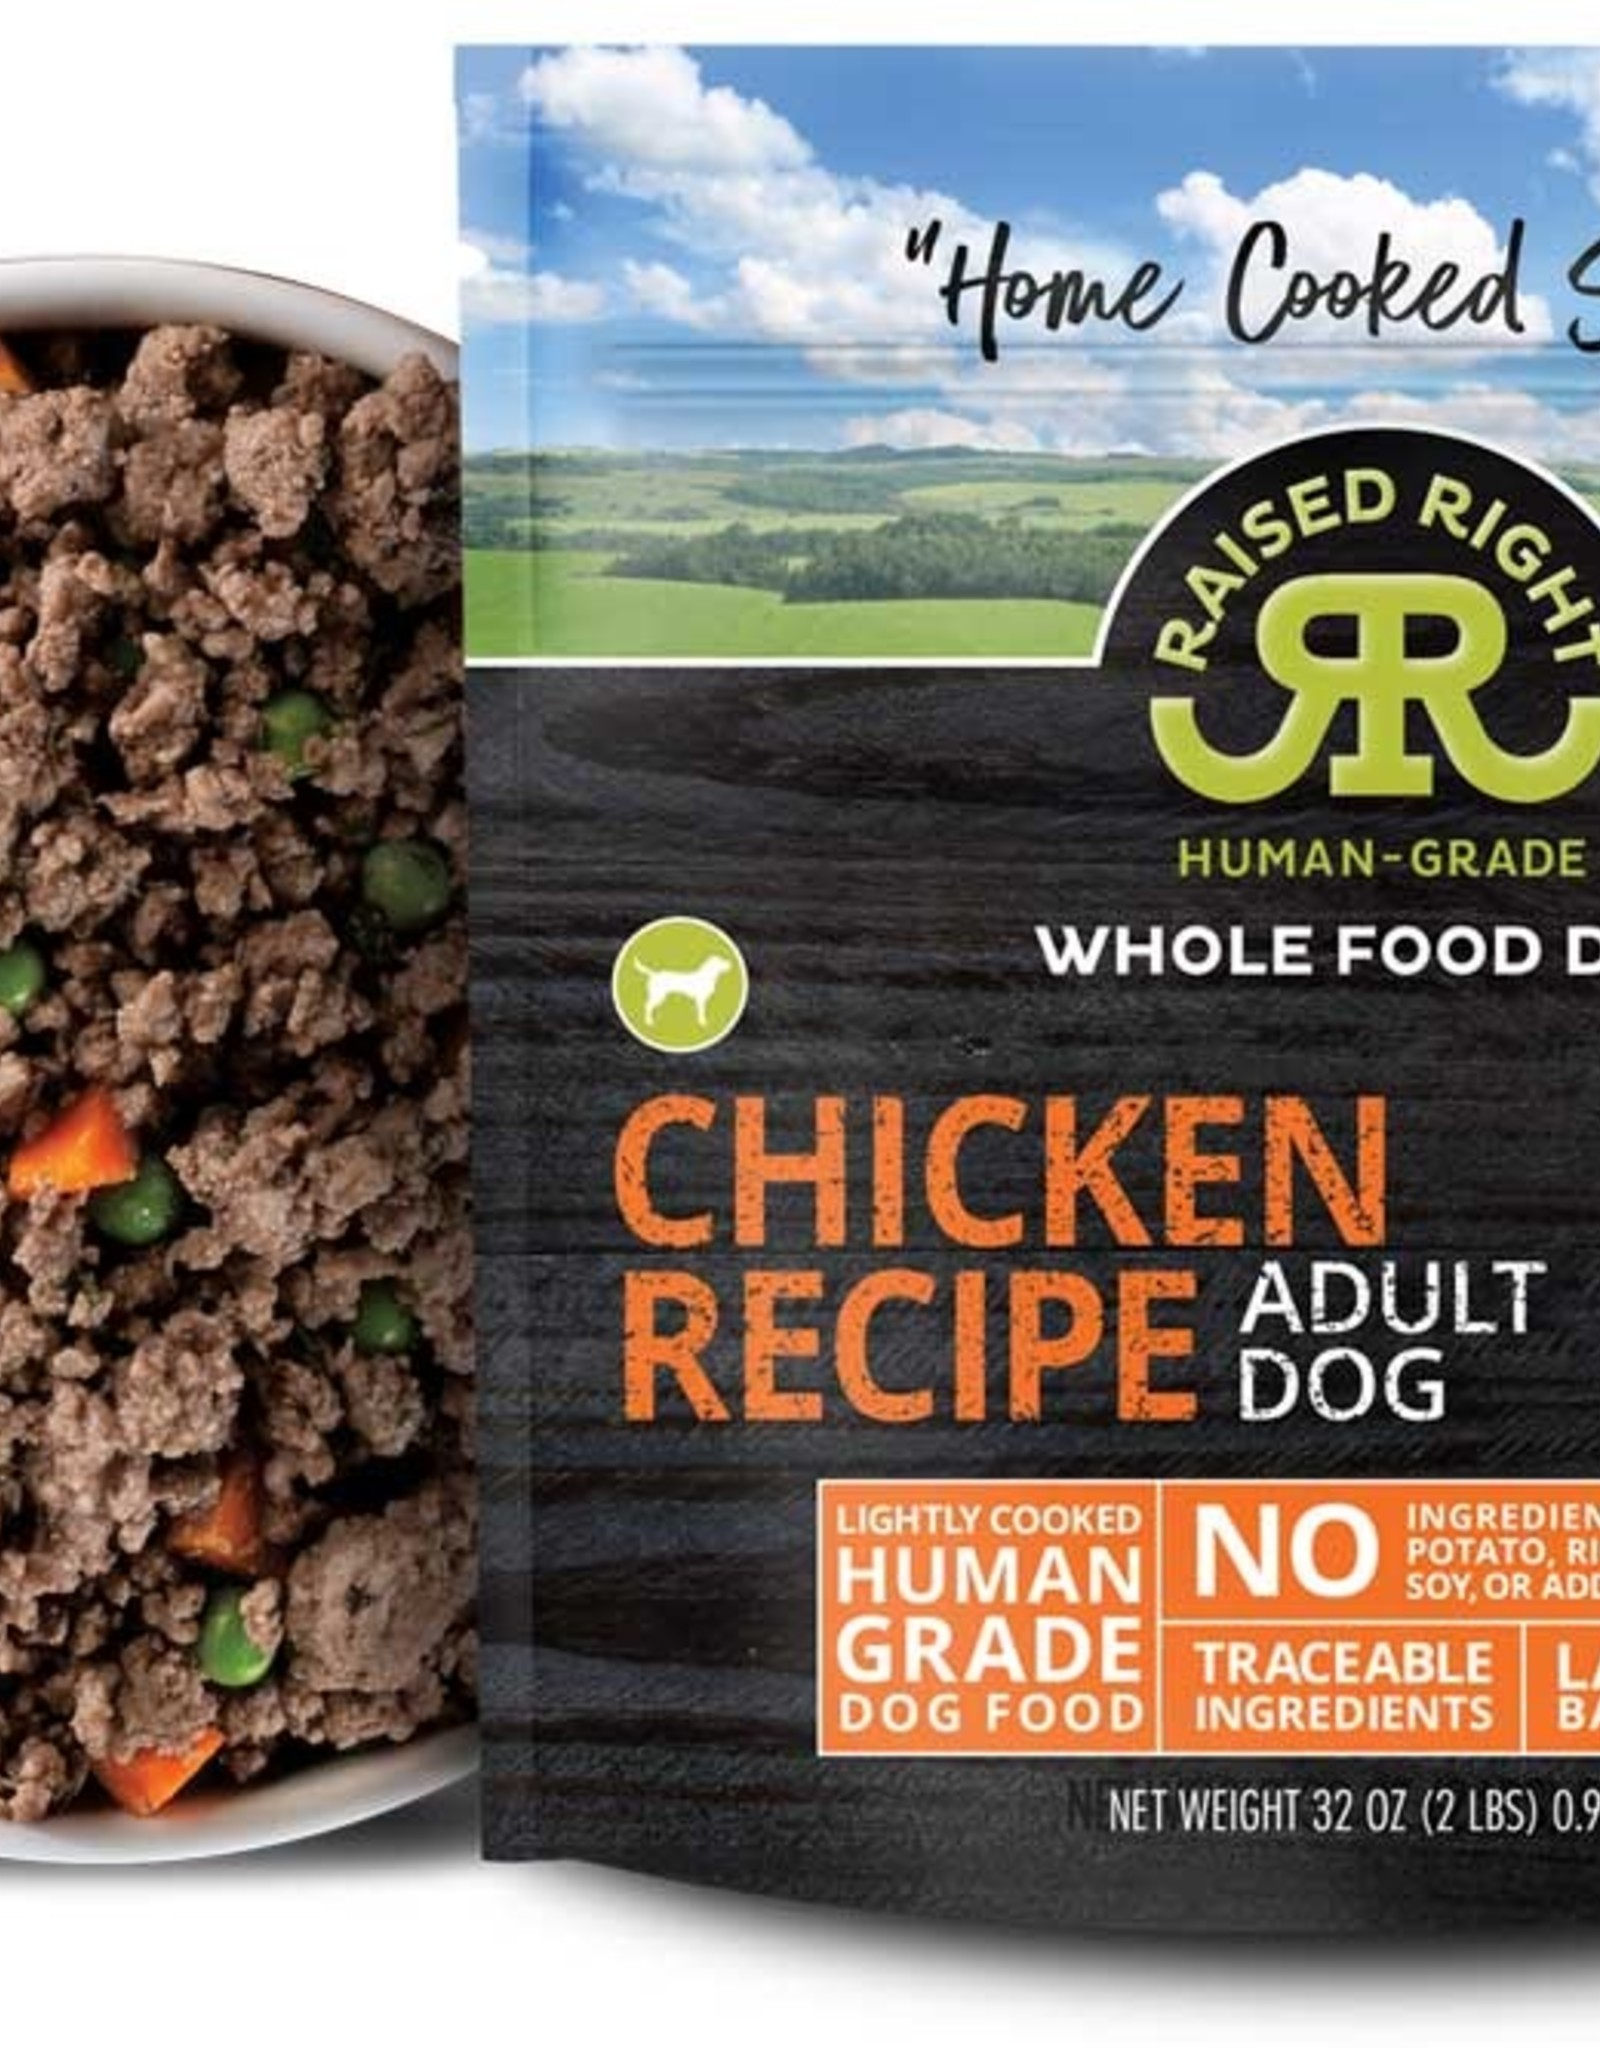 Raised Right Raised Right Chicken Adult Dog Recipe